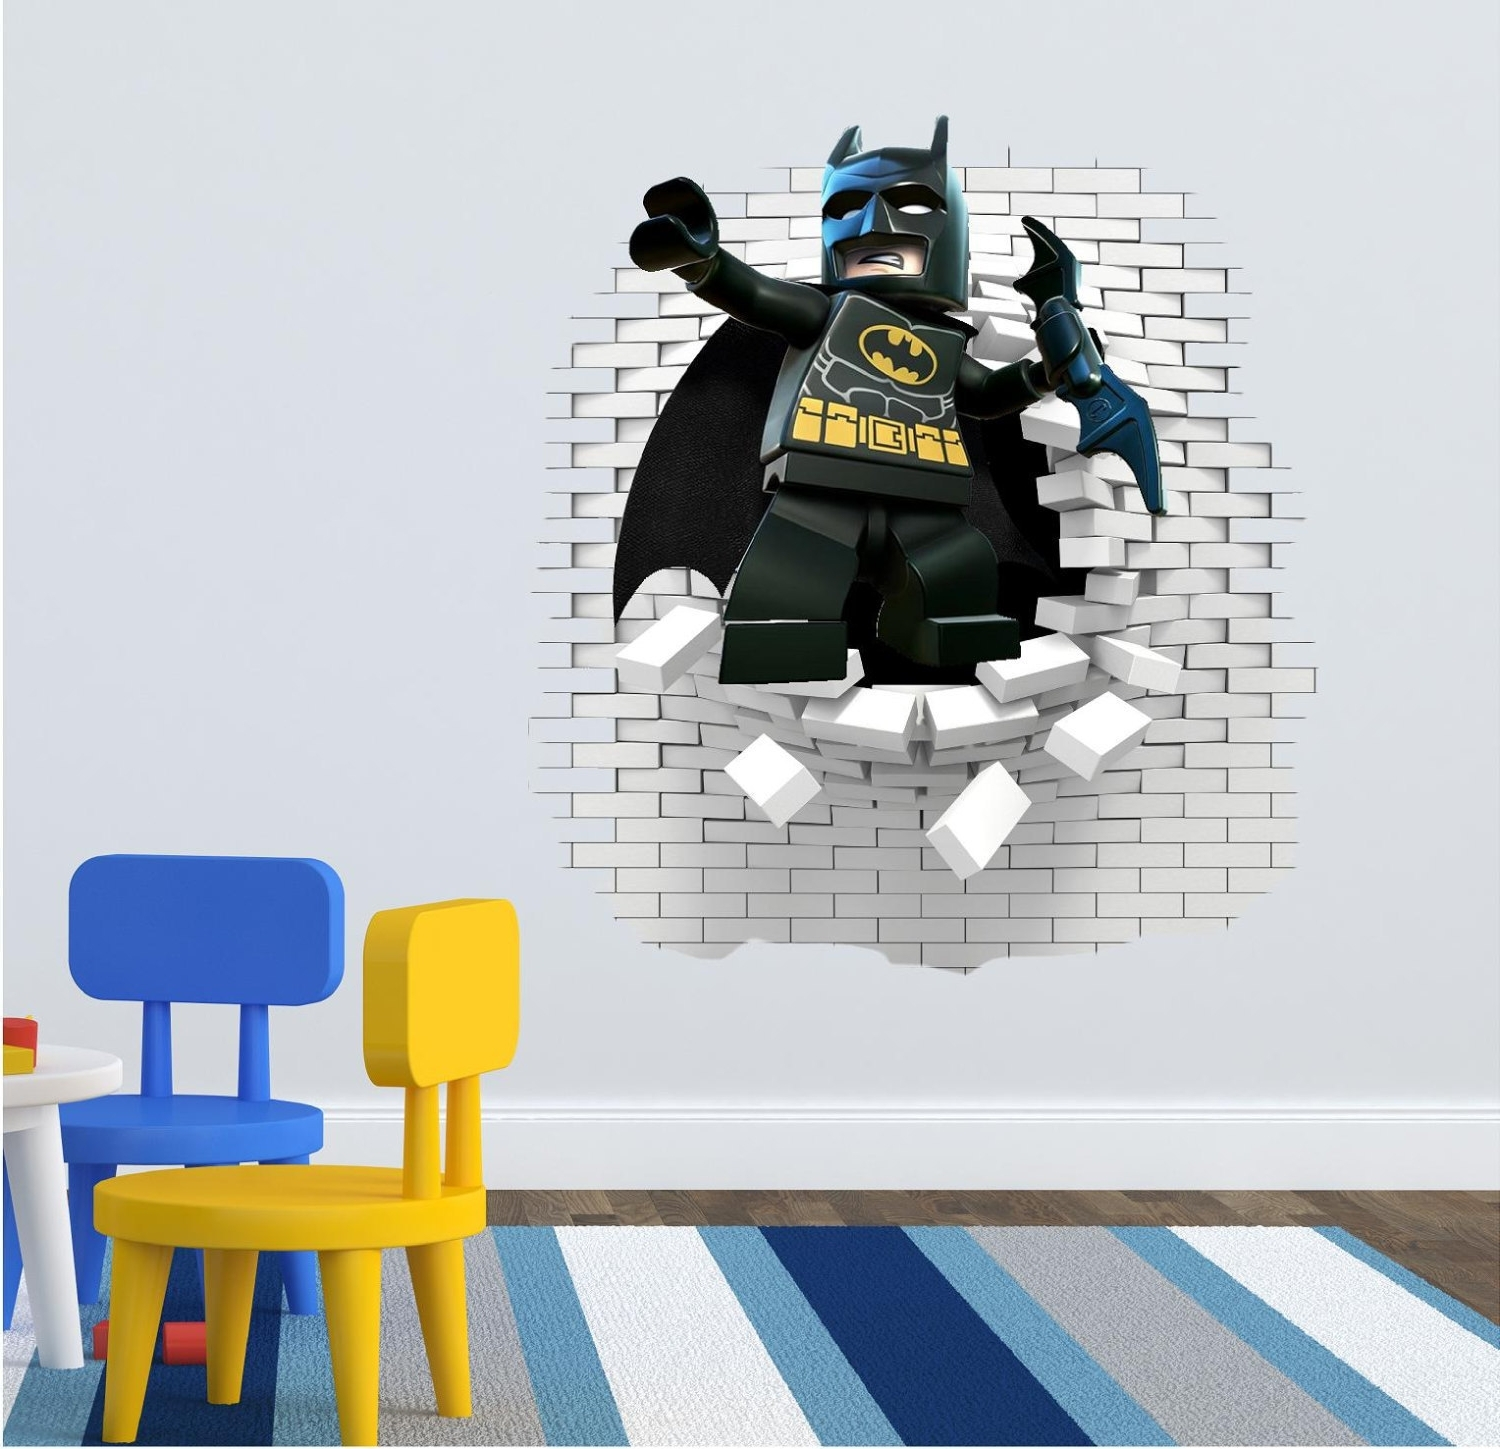 3D Lego Batman Wall Decal Great For The Kids Room (View 2 of 15)